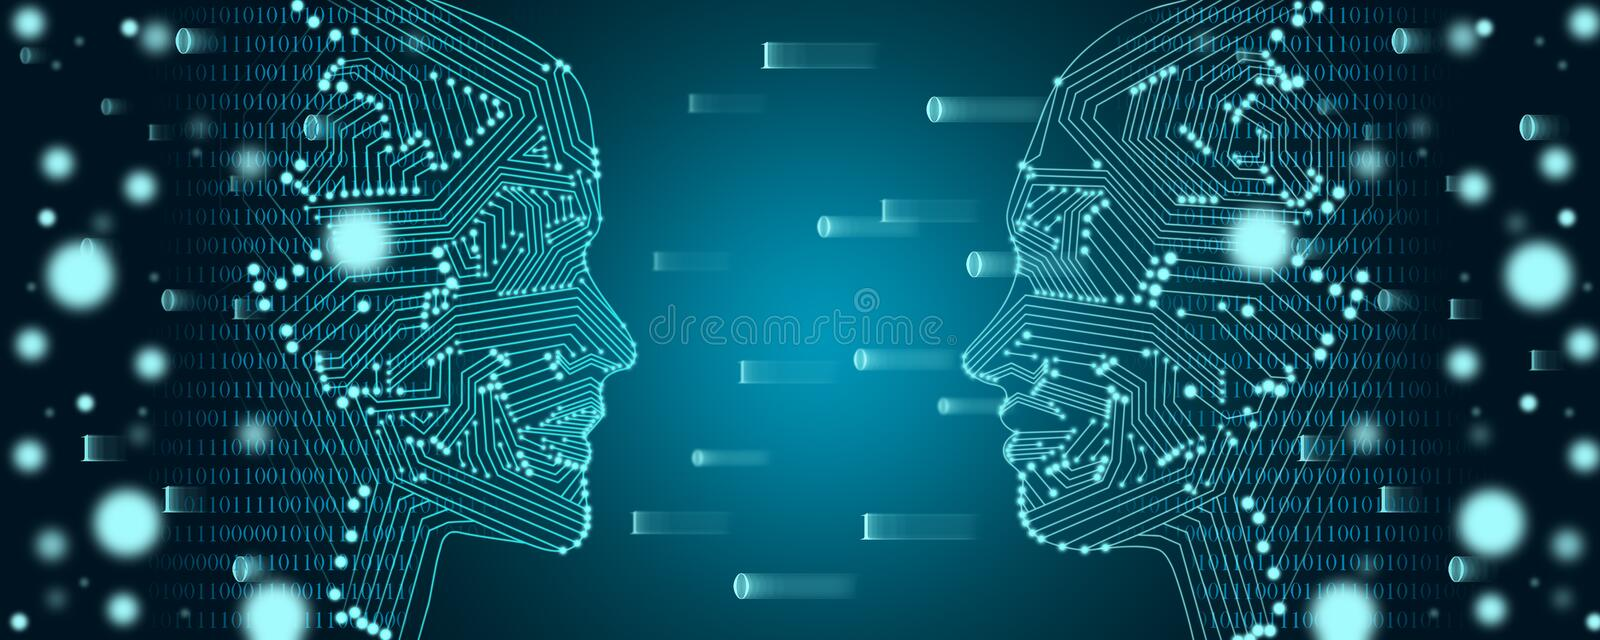 Big data and machine learning concept. Two faces outline with binary data flow on a background royalty free stock images